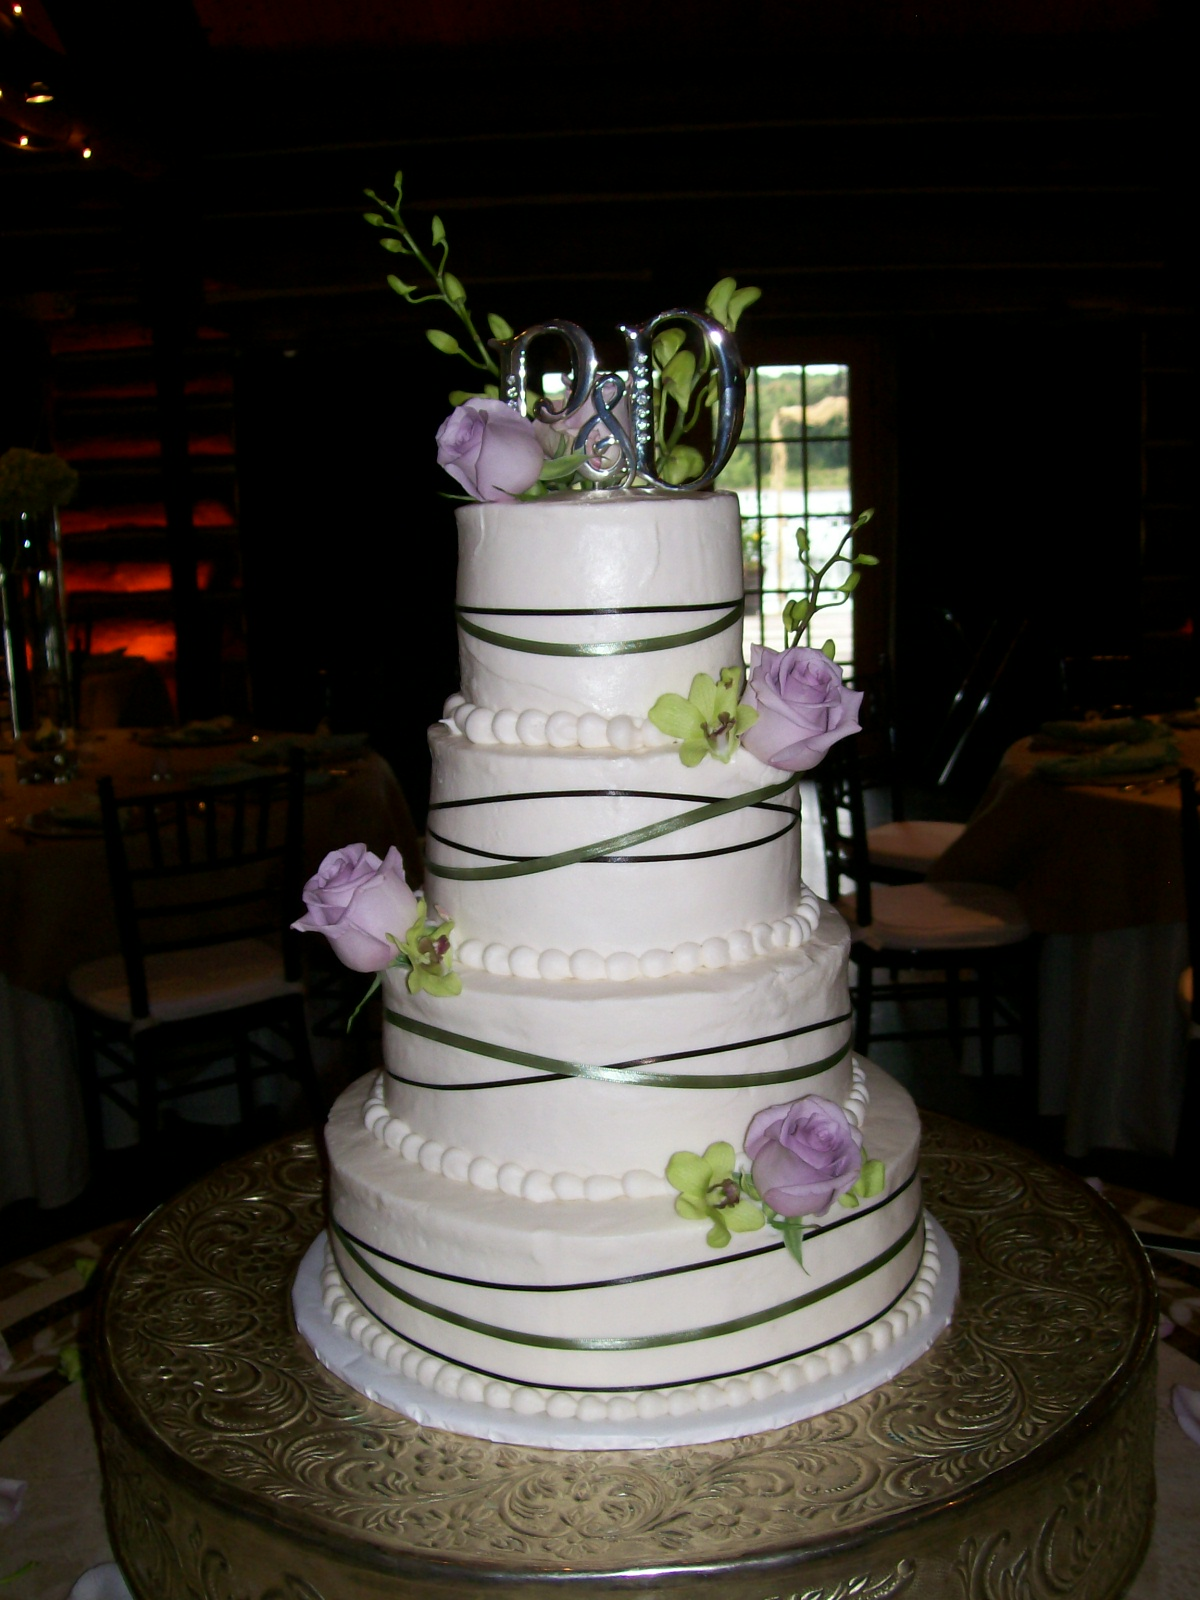 serving hands tulsa wedding flowers catering and cakes. Black Bedroom Furniture Sets. Home Design Ideas